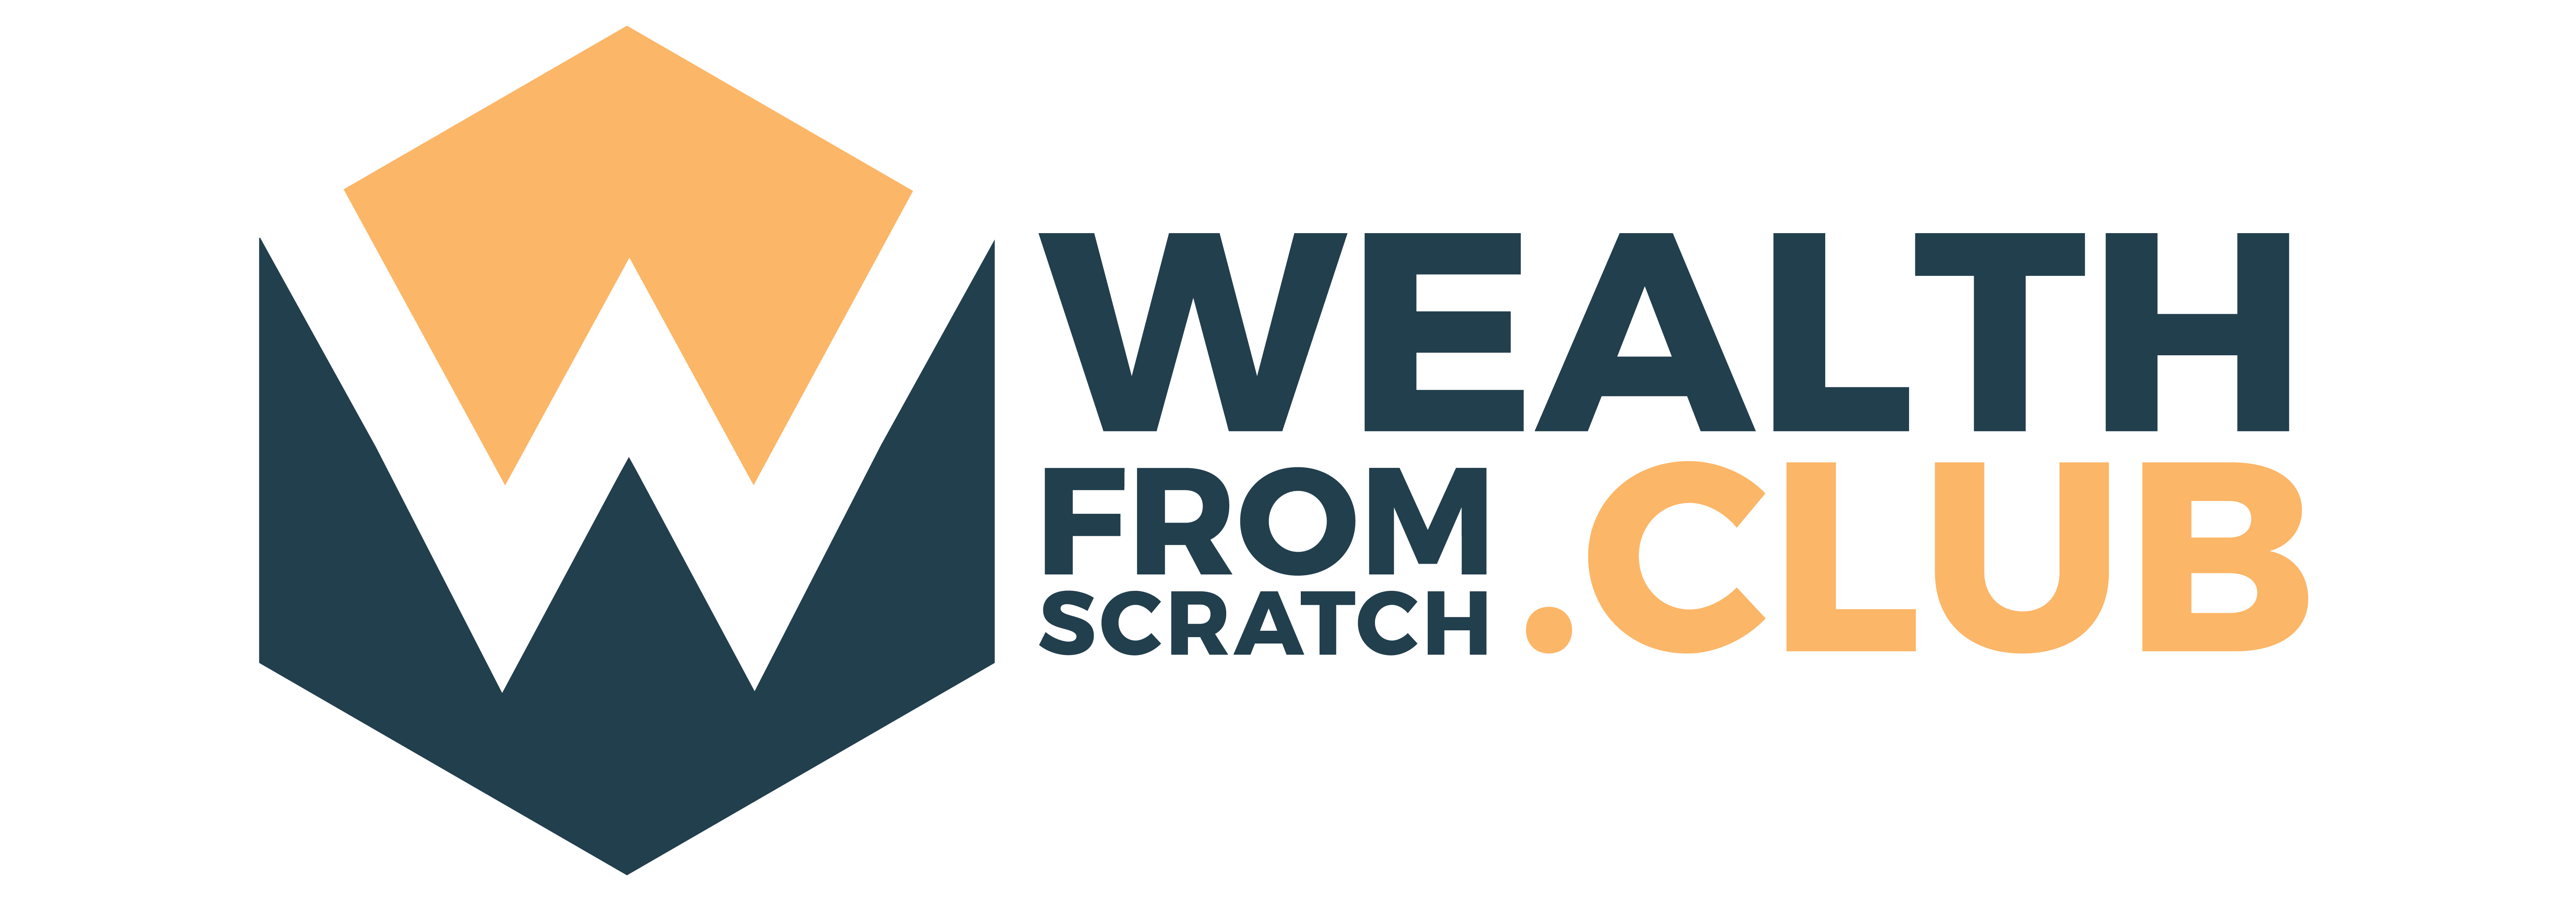 Wealth From Scratch